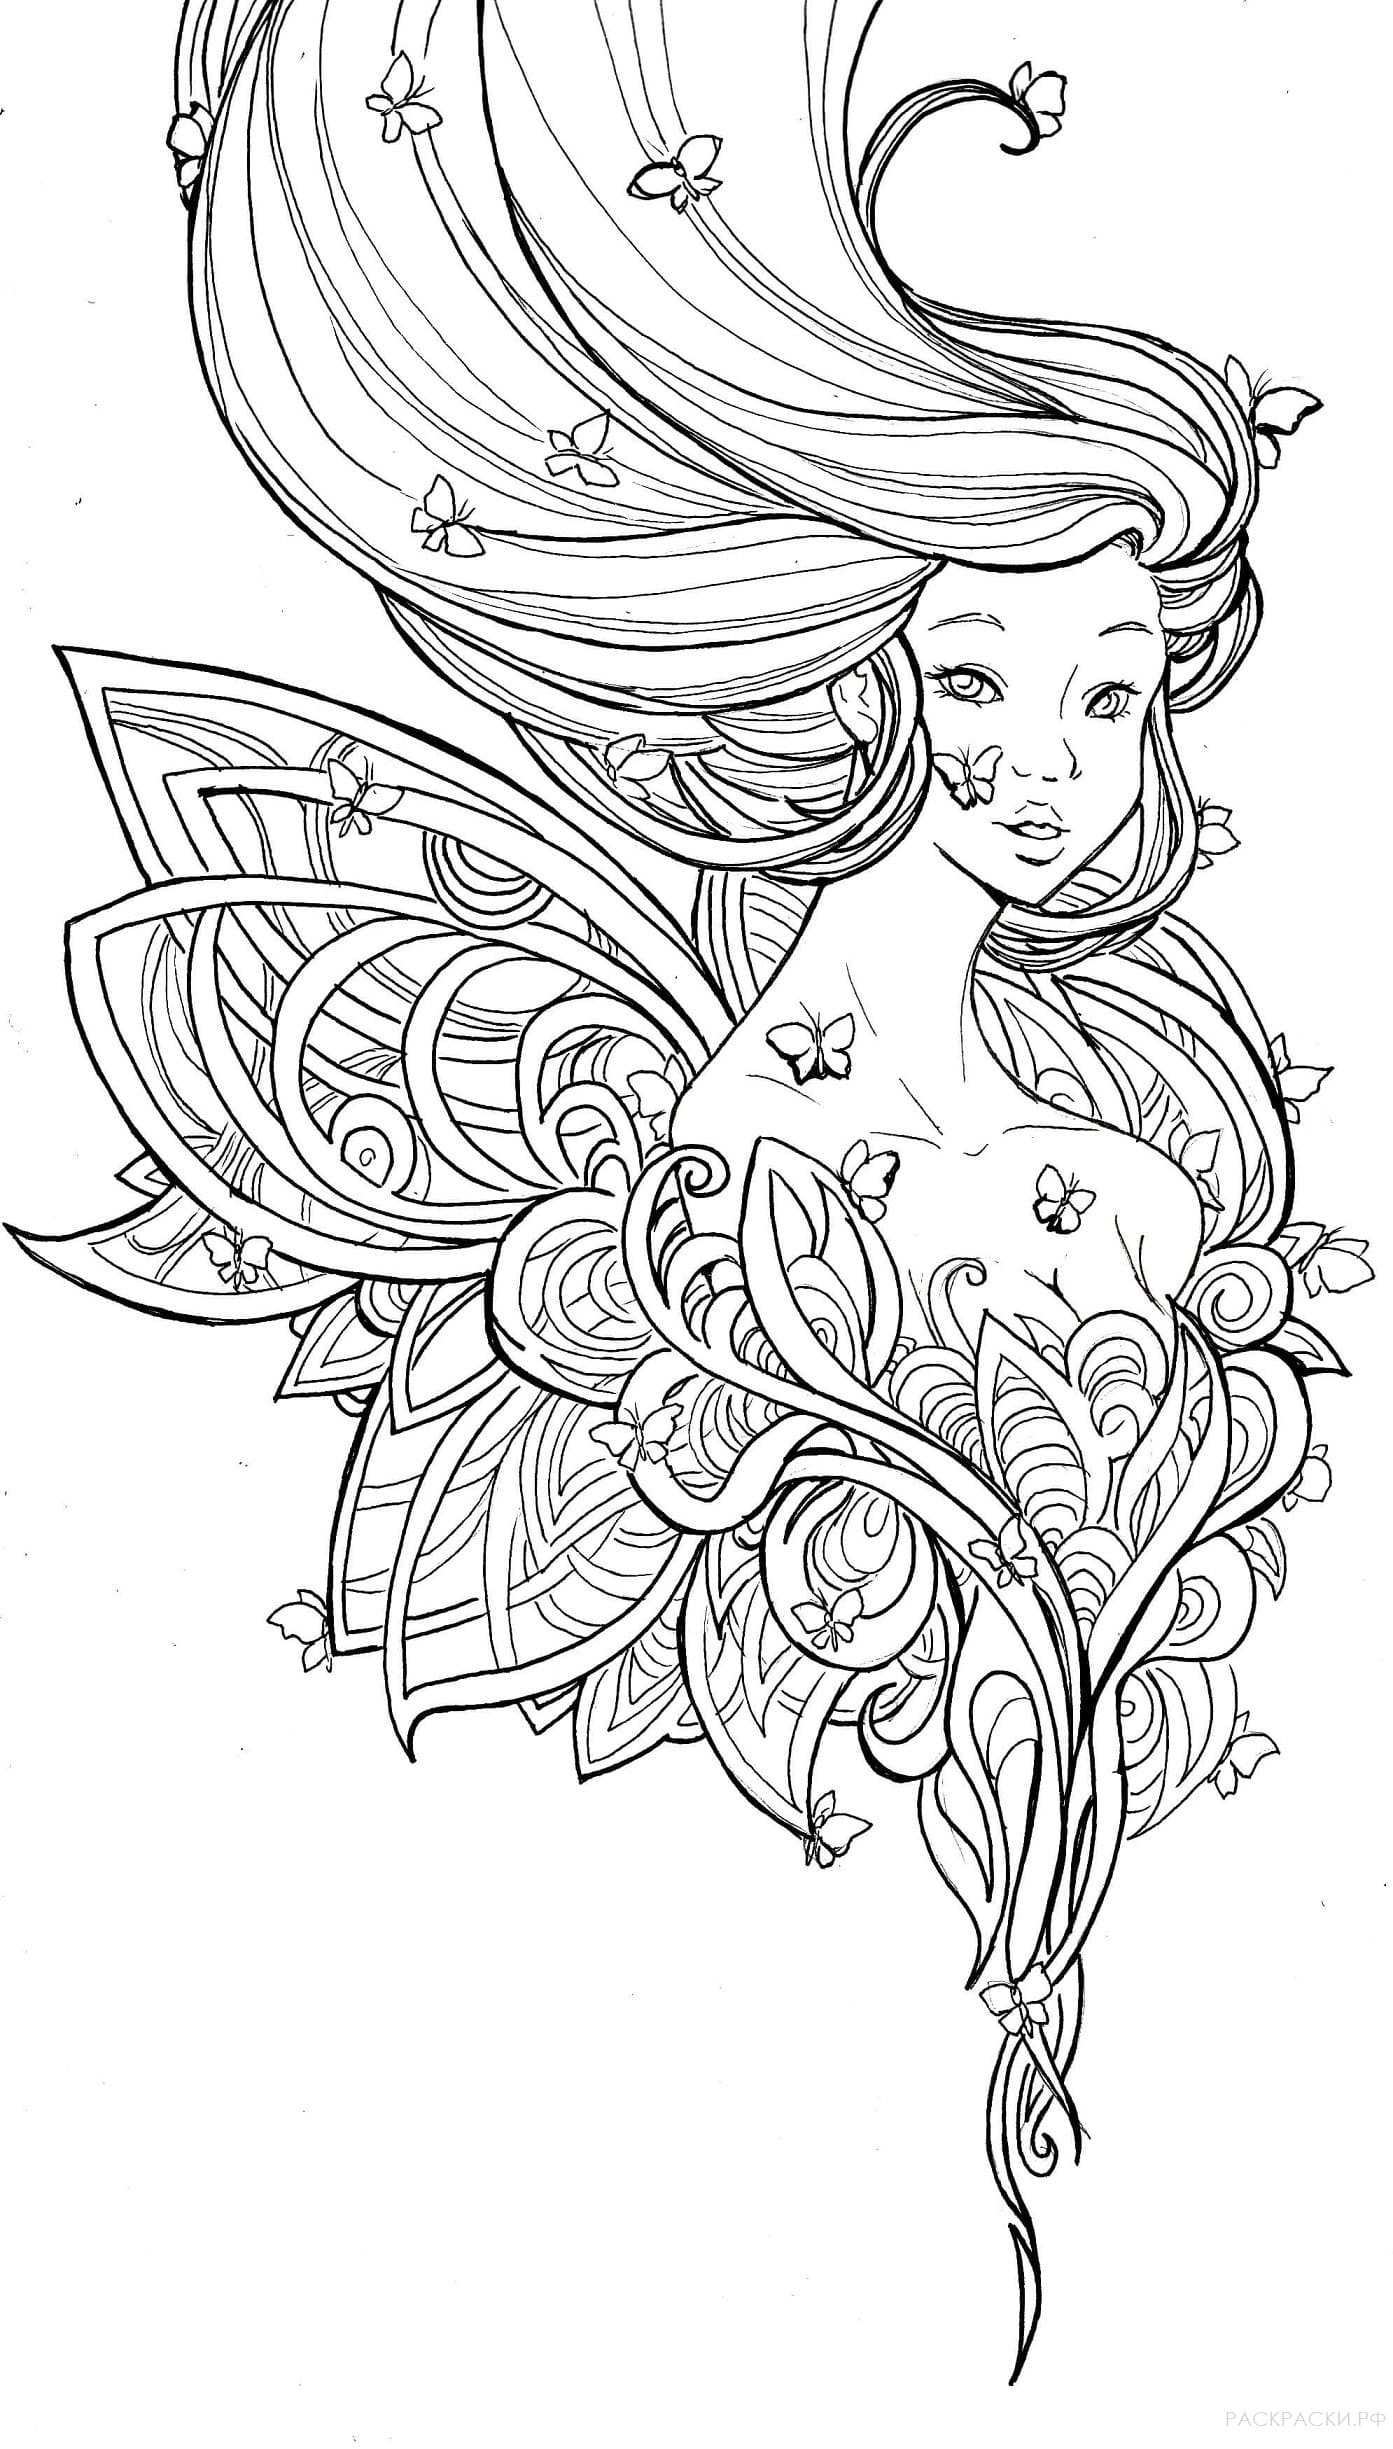 Coloring Pages For 10 Year Old Girls Complex Coloring Pages For 10 To 12 Year Old Girls Print Them For